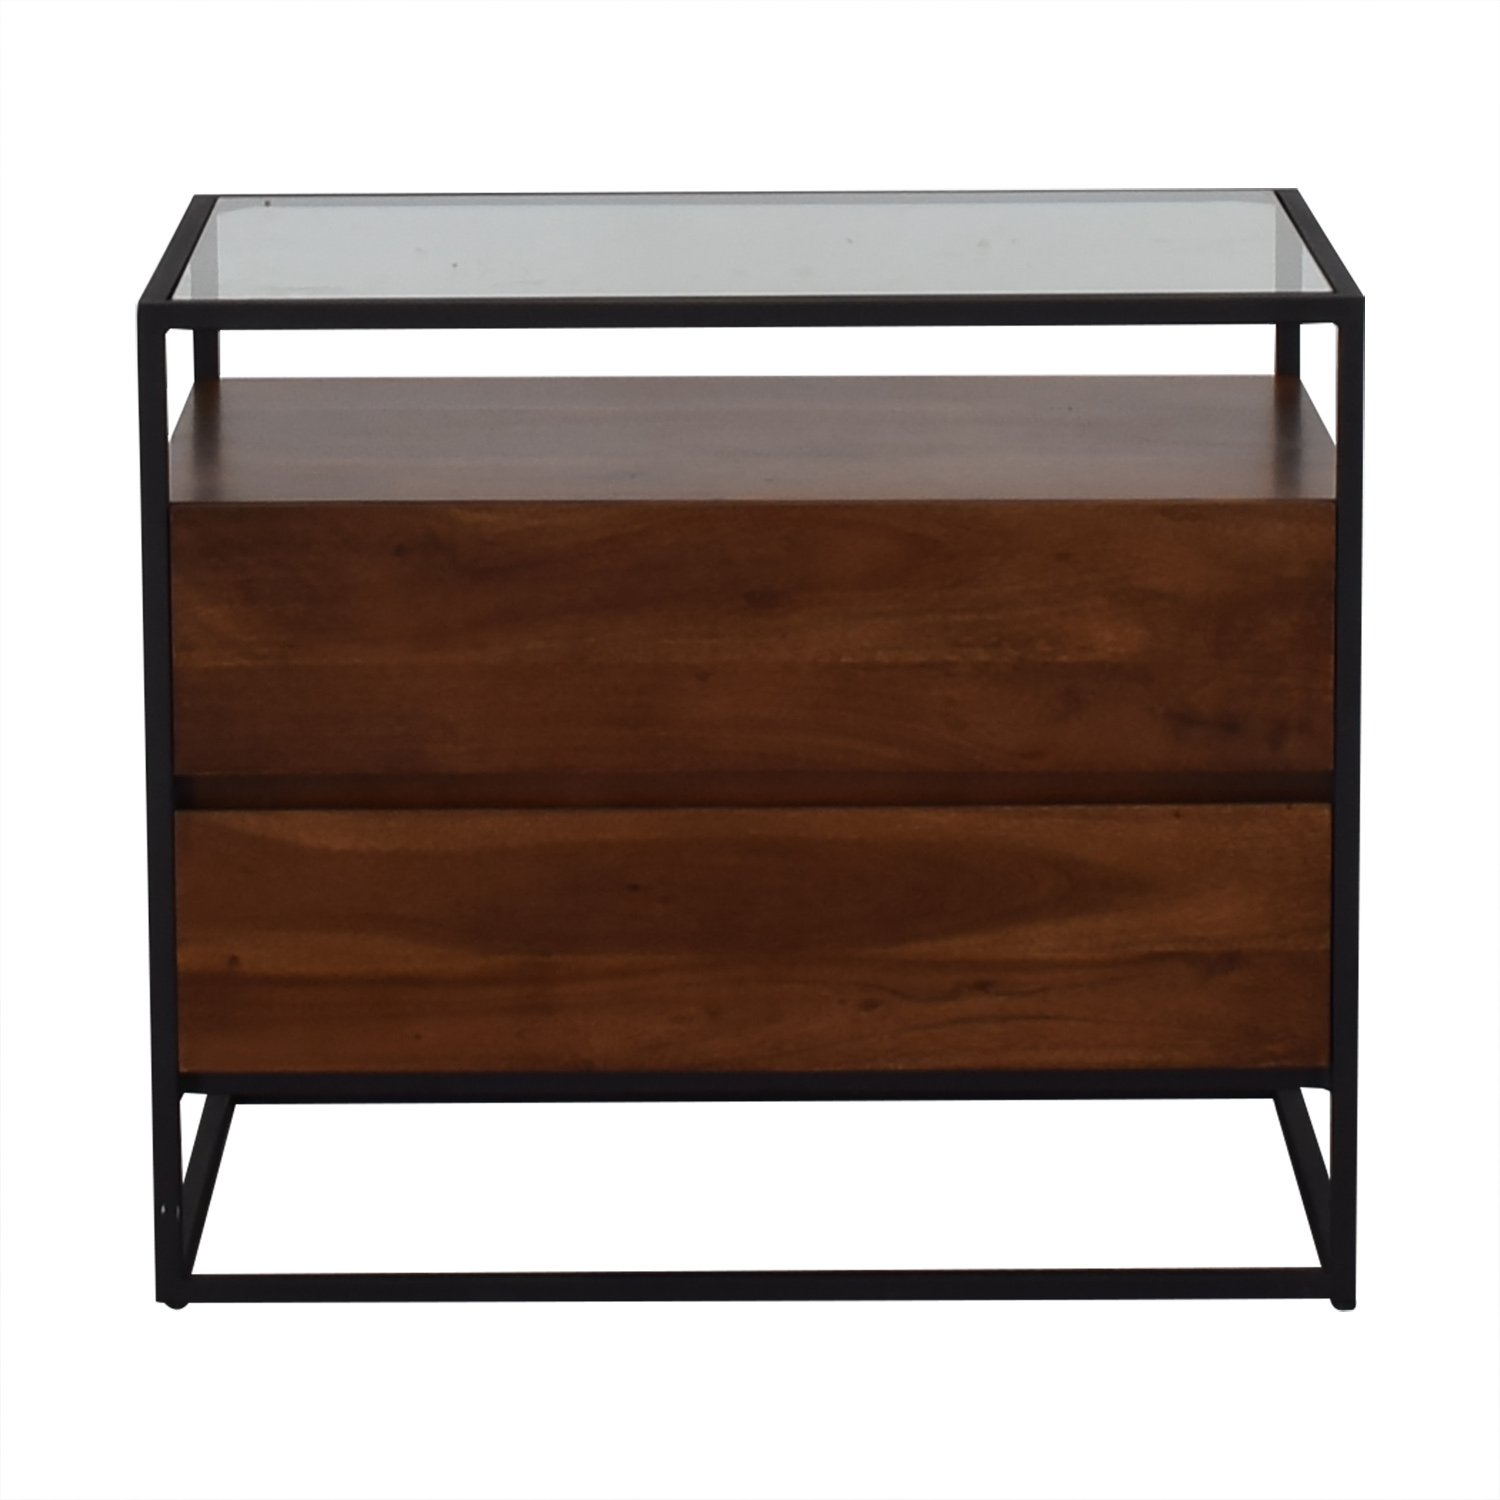 CB2 CB2 Crawford Glass Top Nightstand Tables